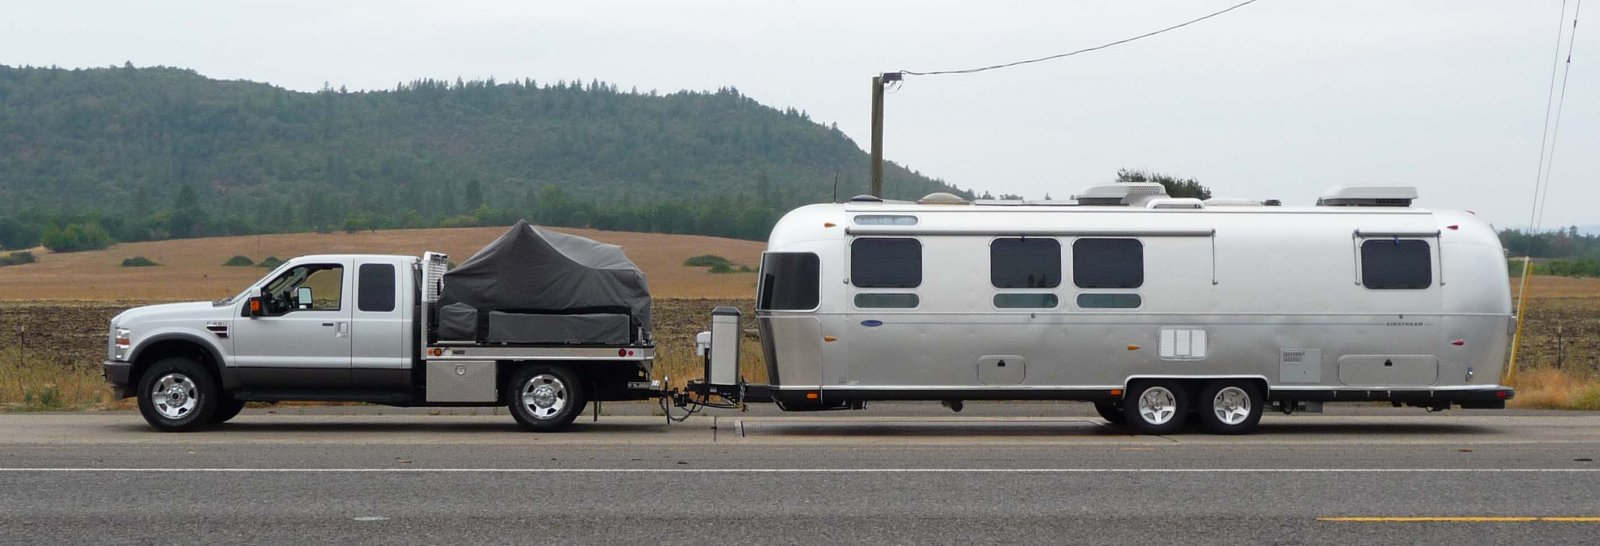 Click image for larger version  Name:Truck and Trailer 8-19-08.jpg Views:132 Size:132.9 KB ID:65960